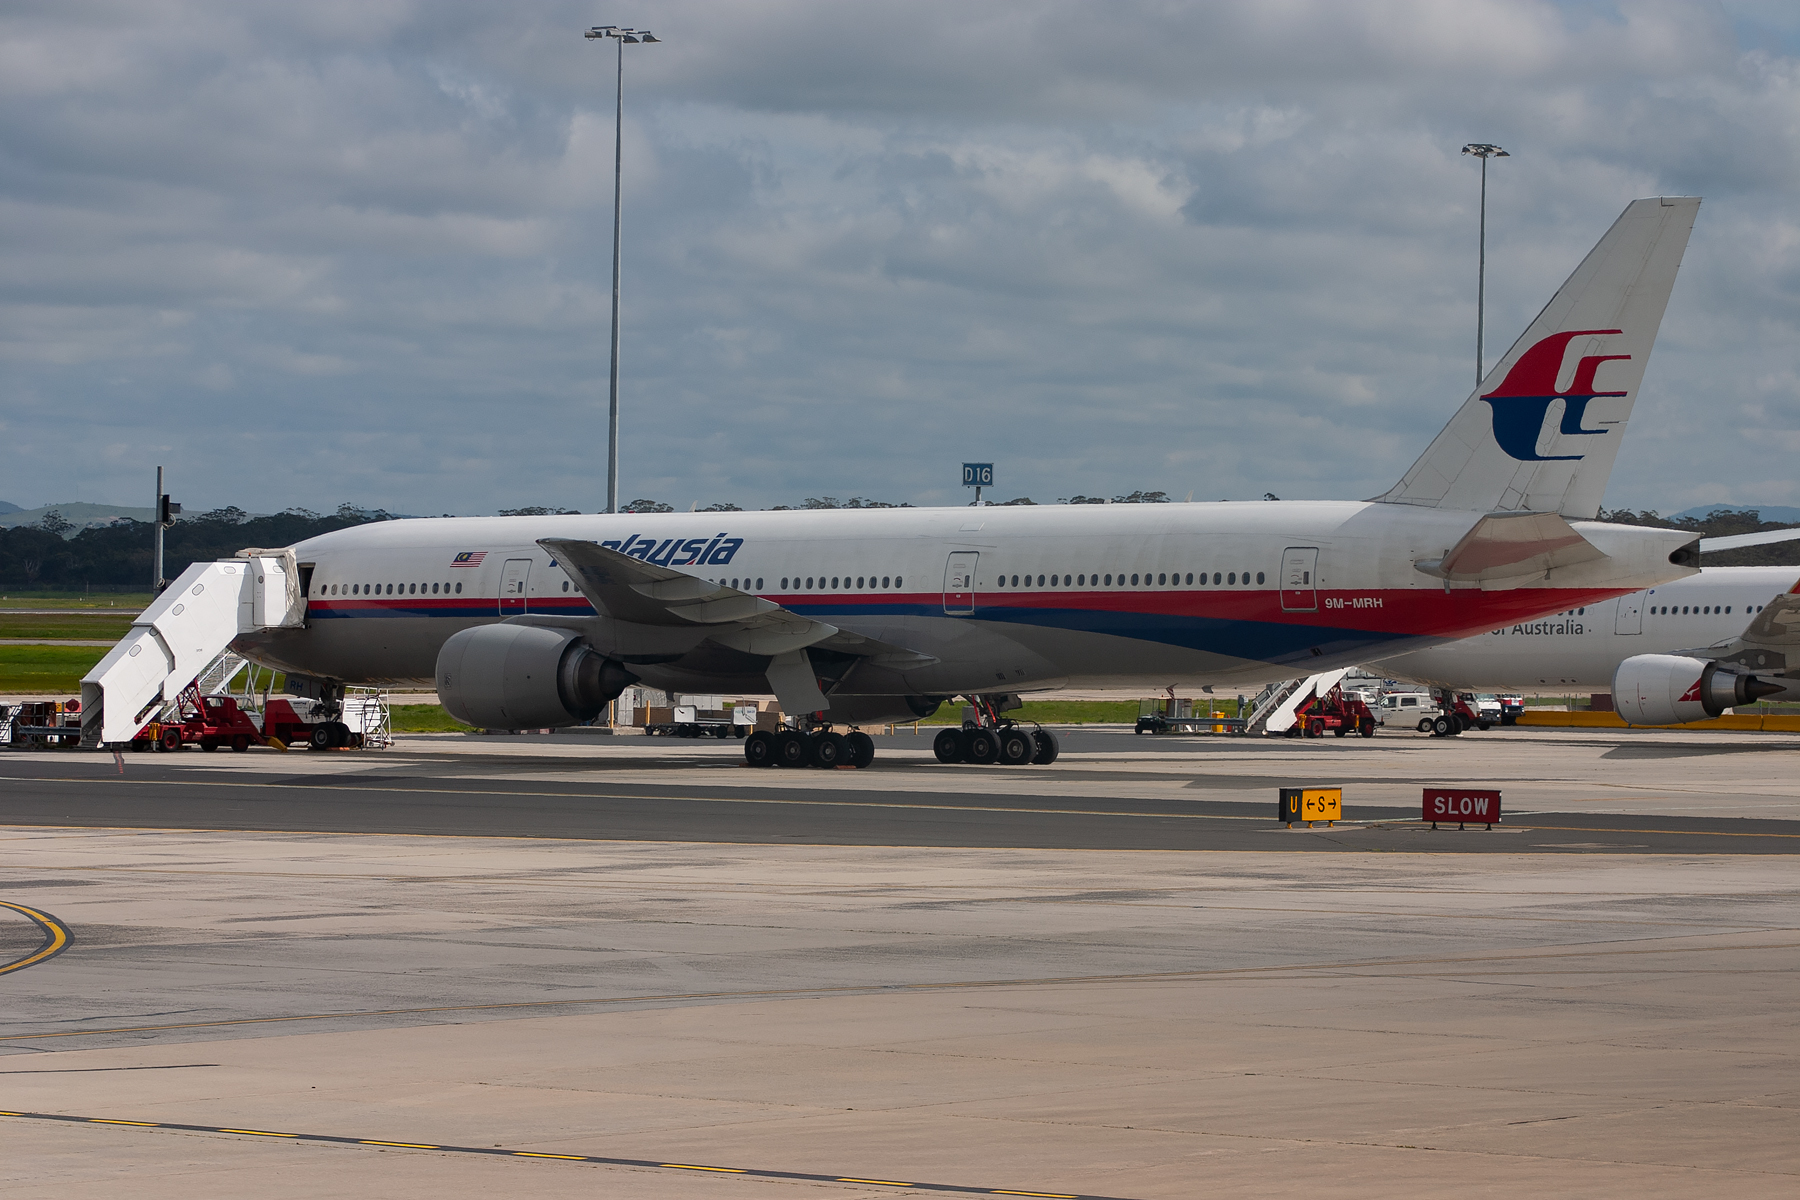 Malaysian Airlines Boeing 777-200ER 9M-MRH at Tullamarine